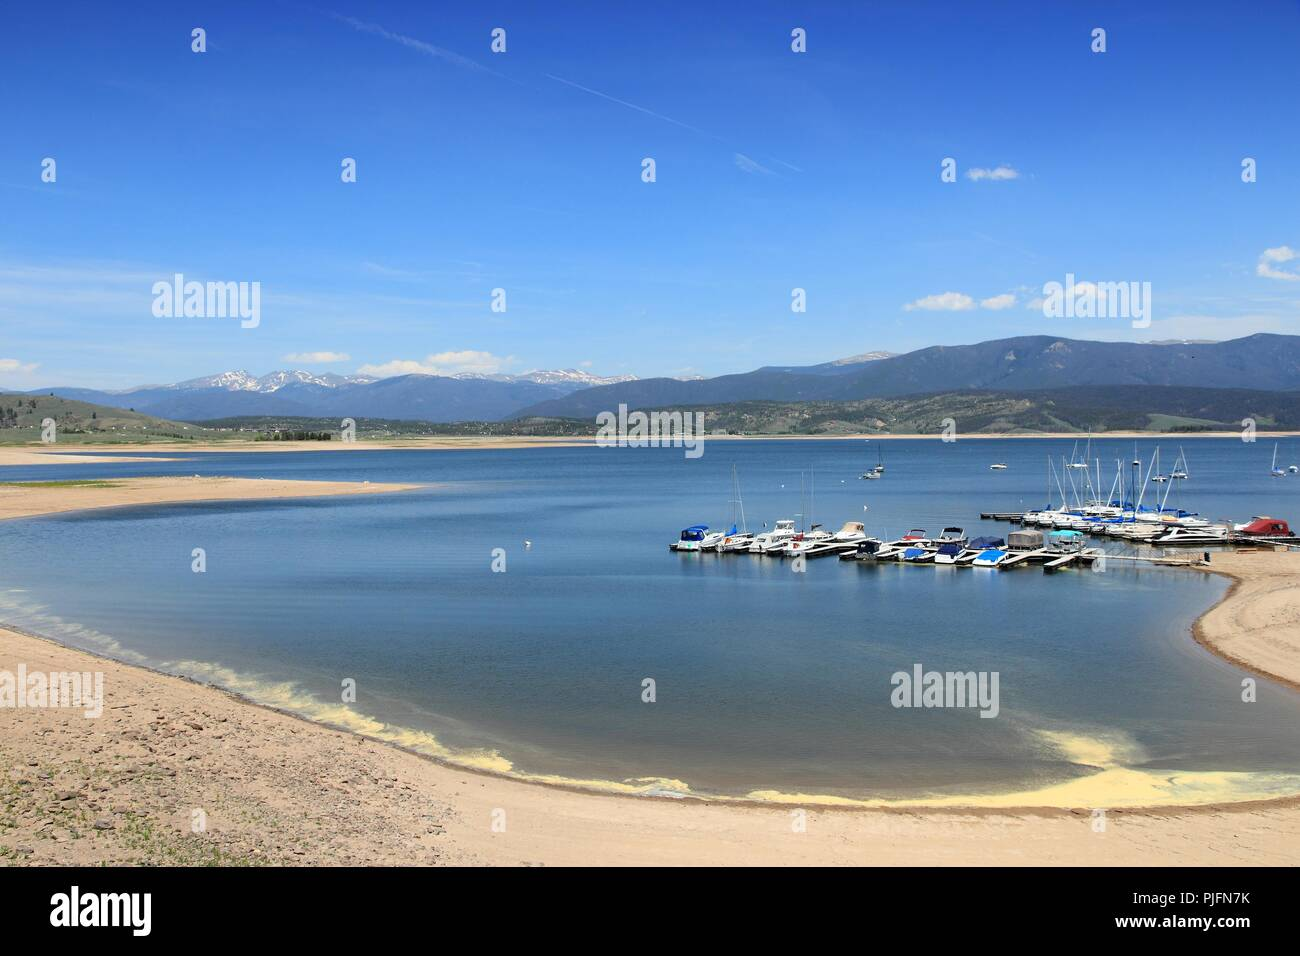 Colorado, United States - Lake Granby view with Rocky Mountains in background. Part of Arapaho National Recreation Area. - Stock Image